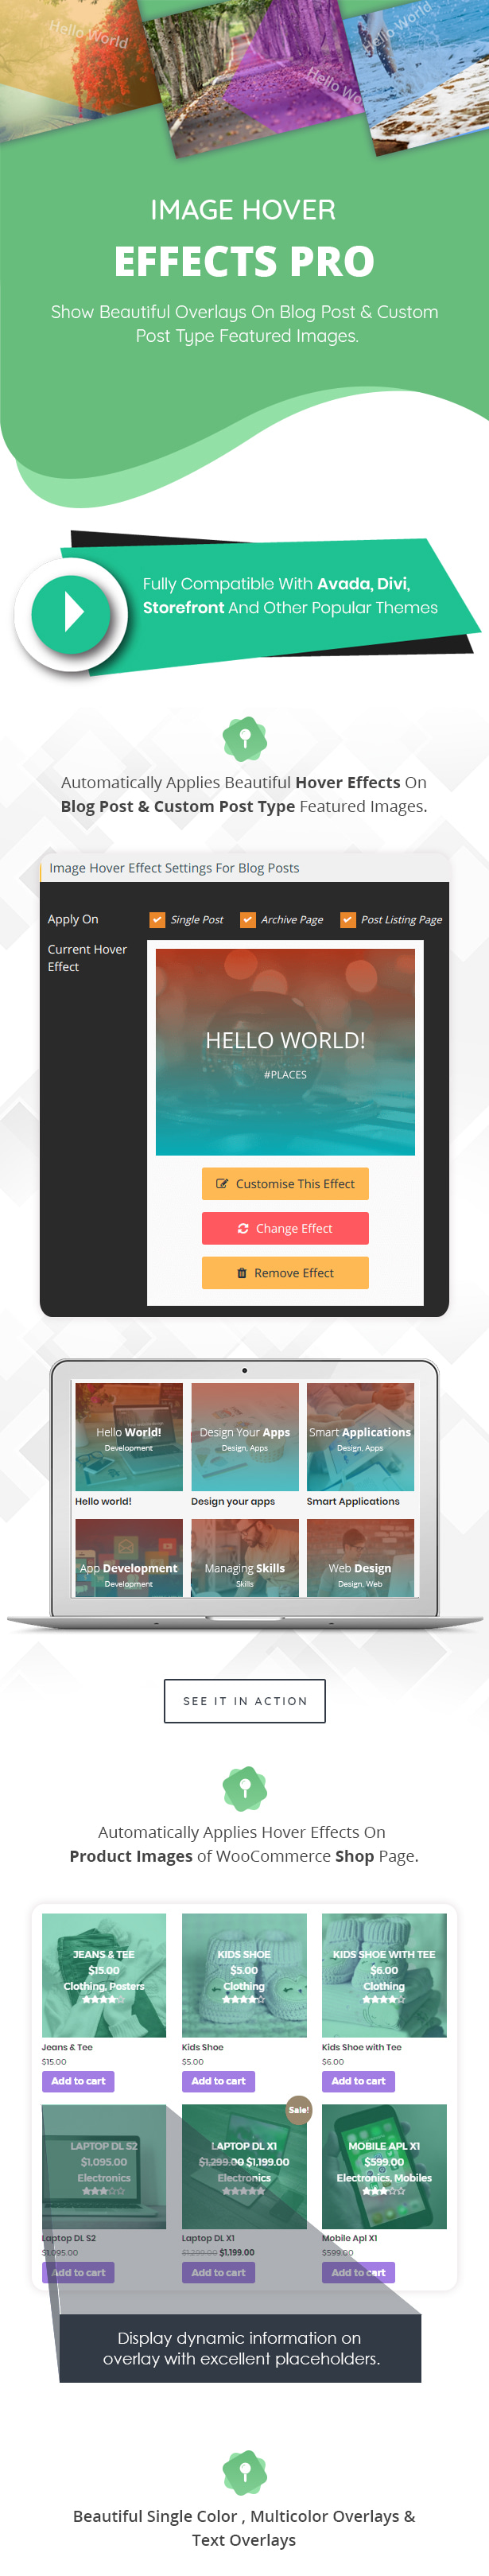 WP Image Hover Effects - 1